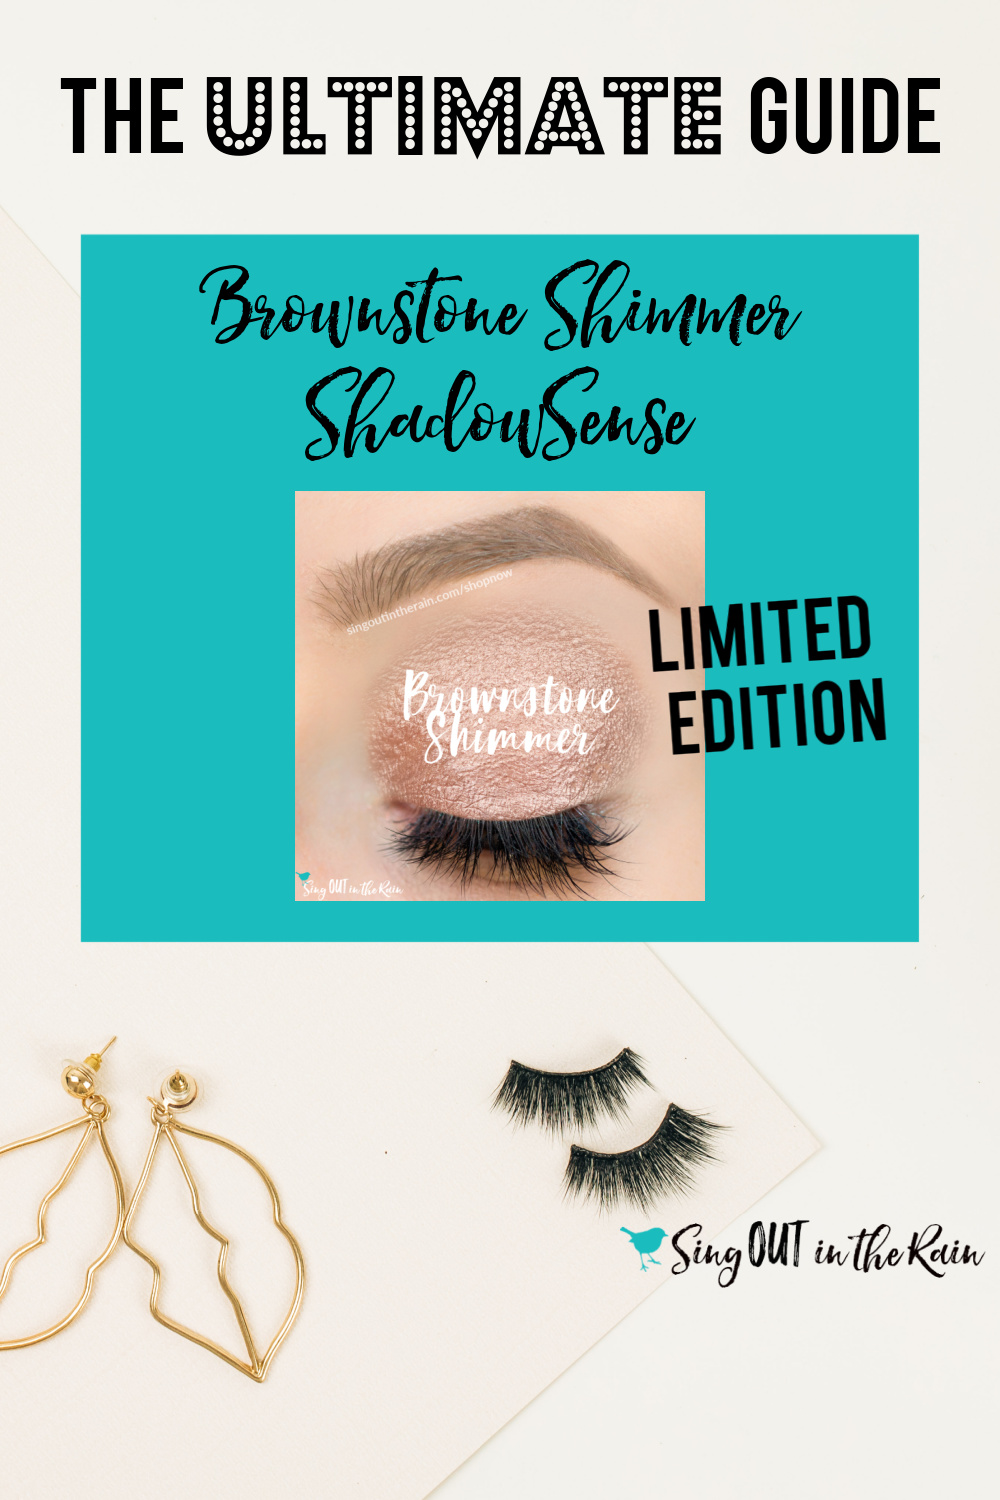 The Ultimate Guide to BrownStone Shimmer ShadowSense